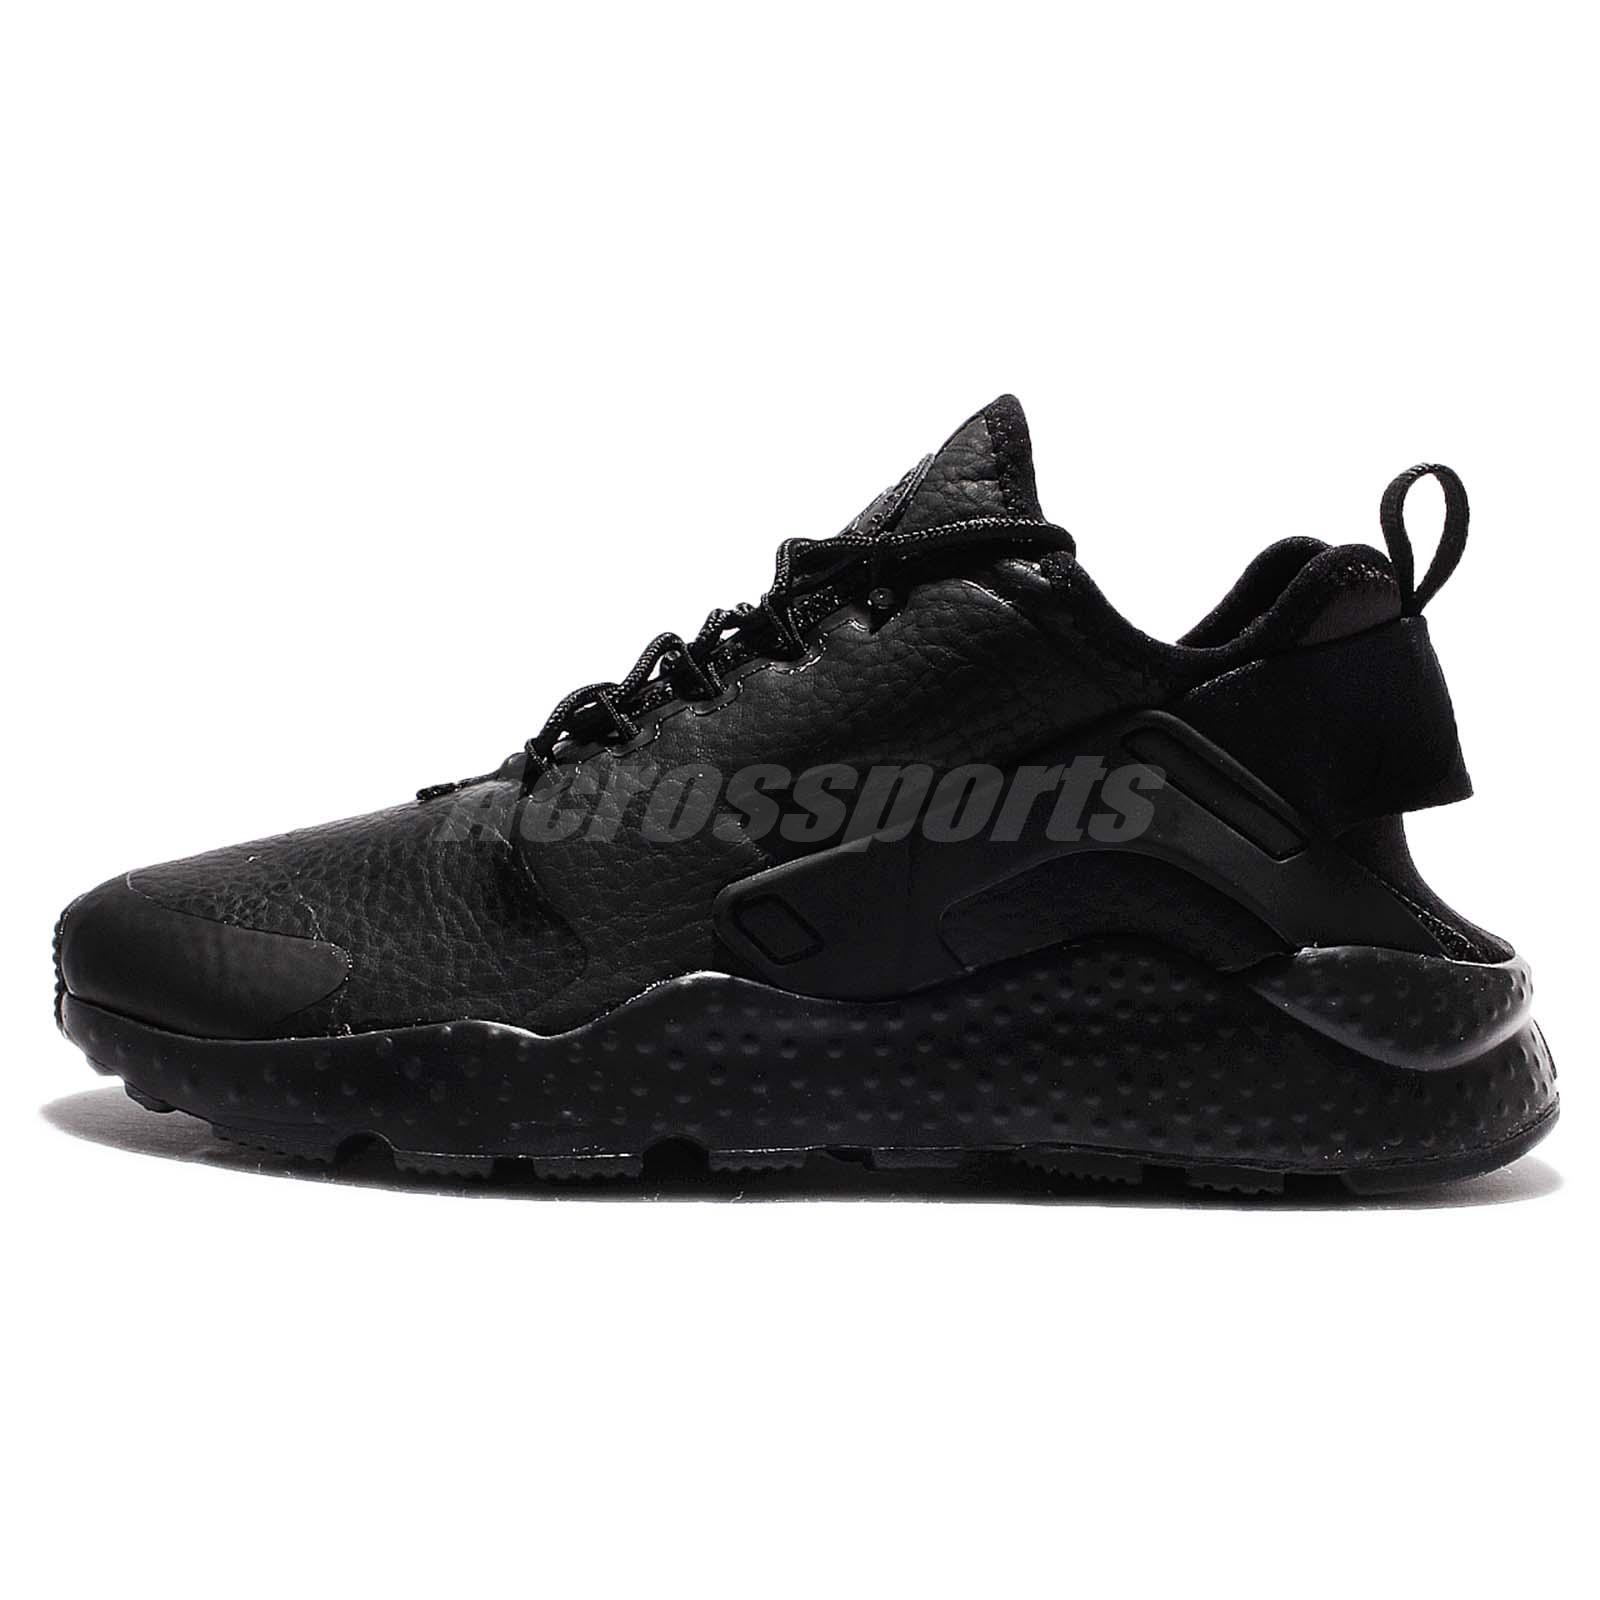 41e5c452a26ce Nike Wmns Beautiful x Powerful Air Huarache Run Ultra PRM Black Women  859511-002